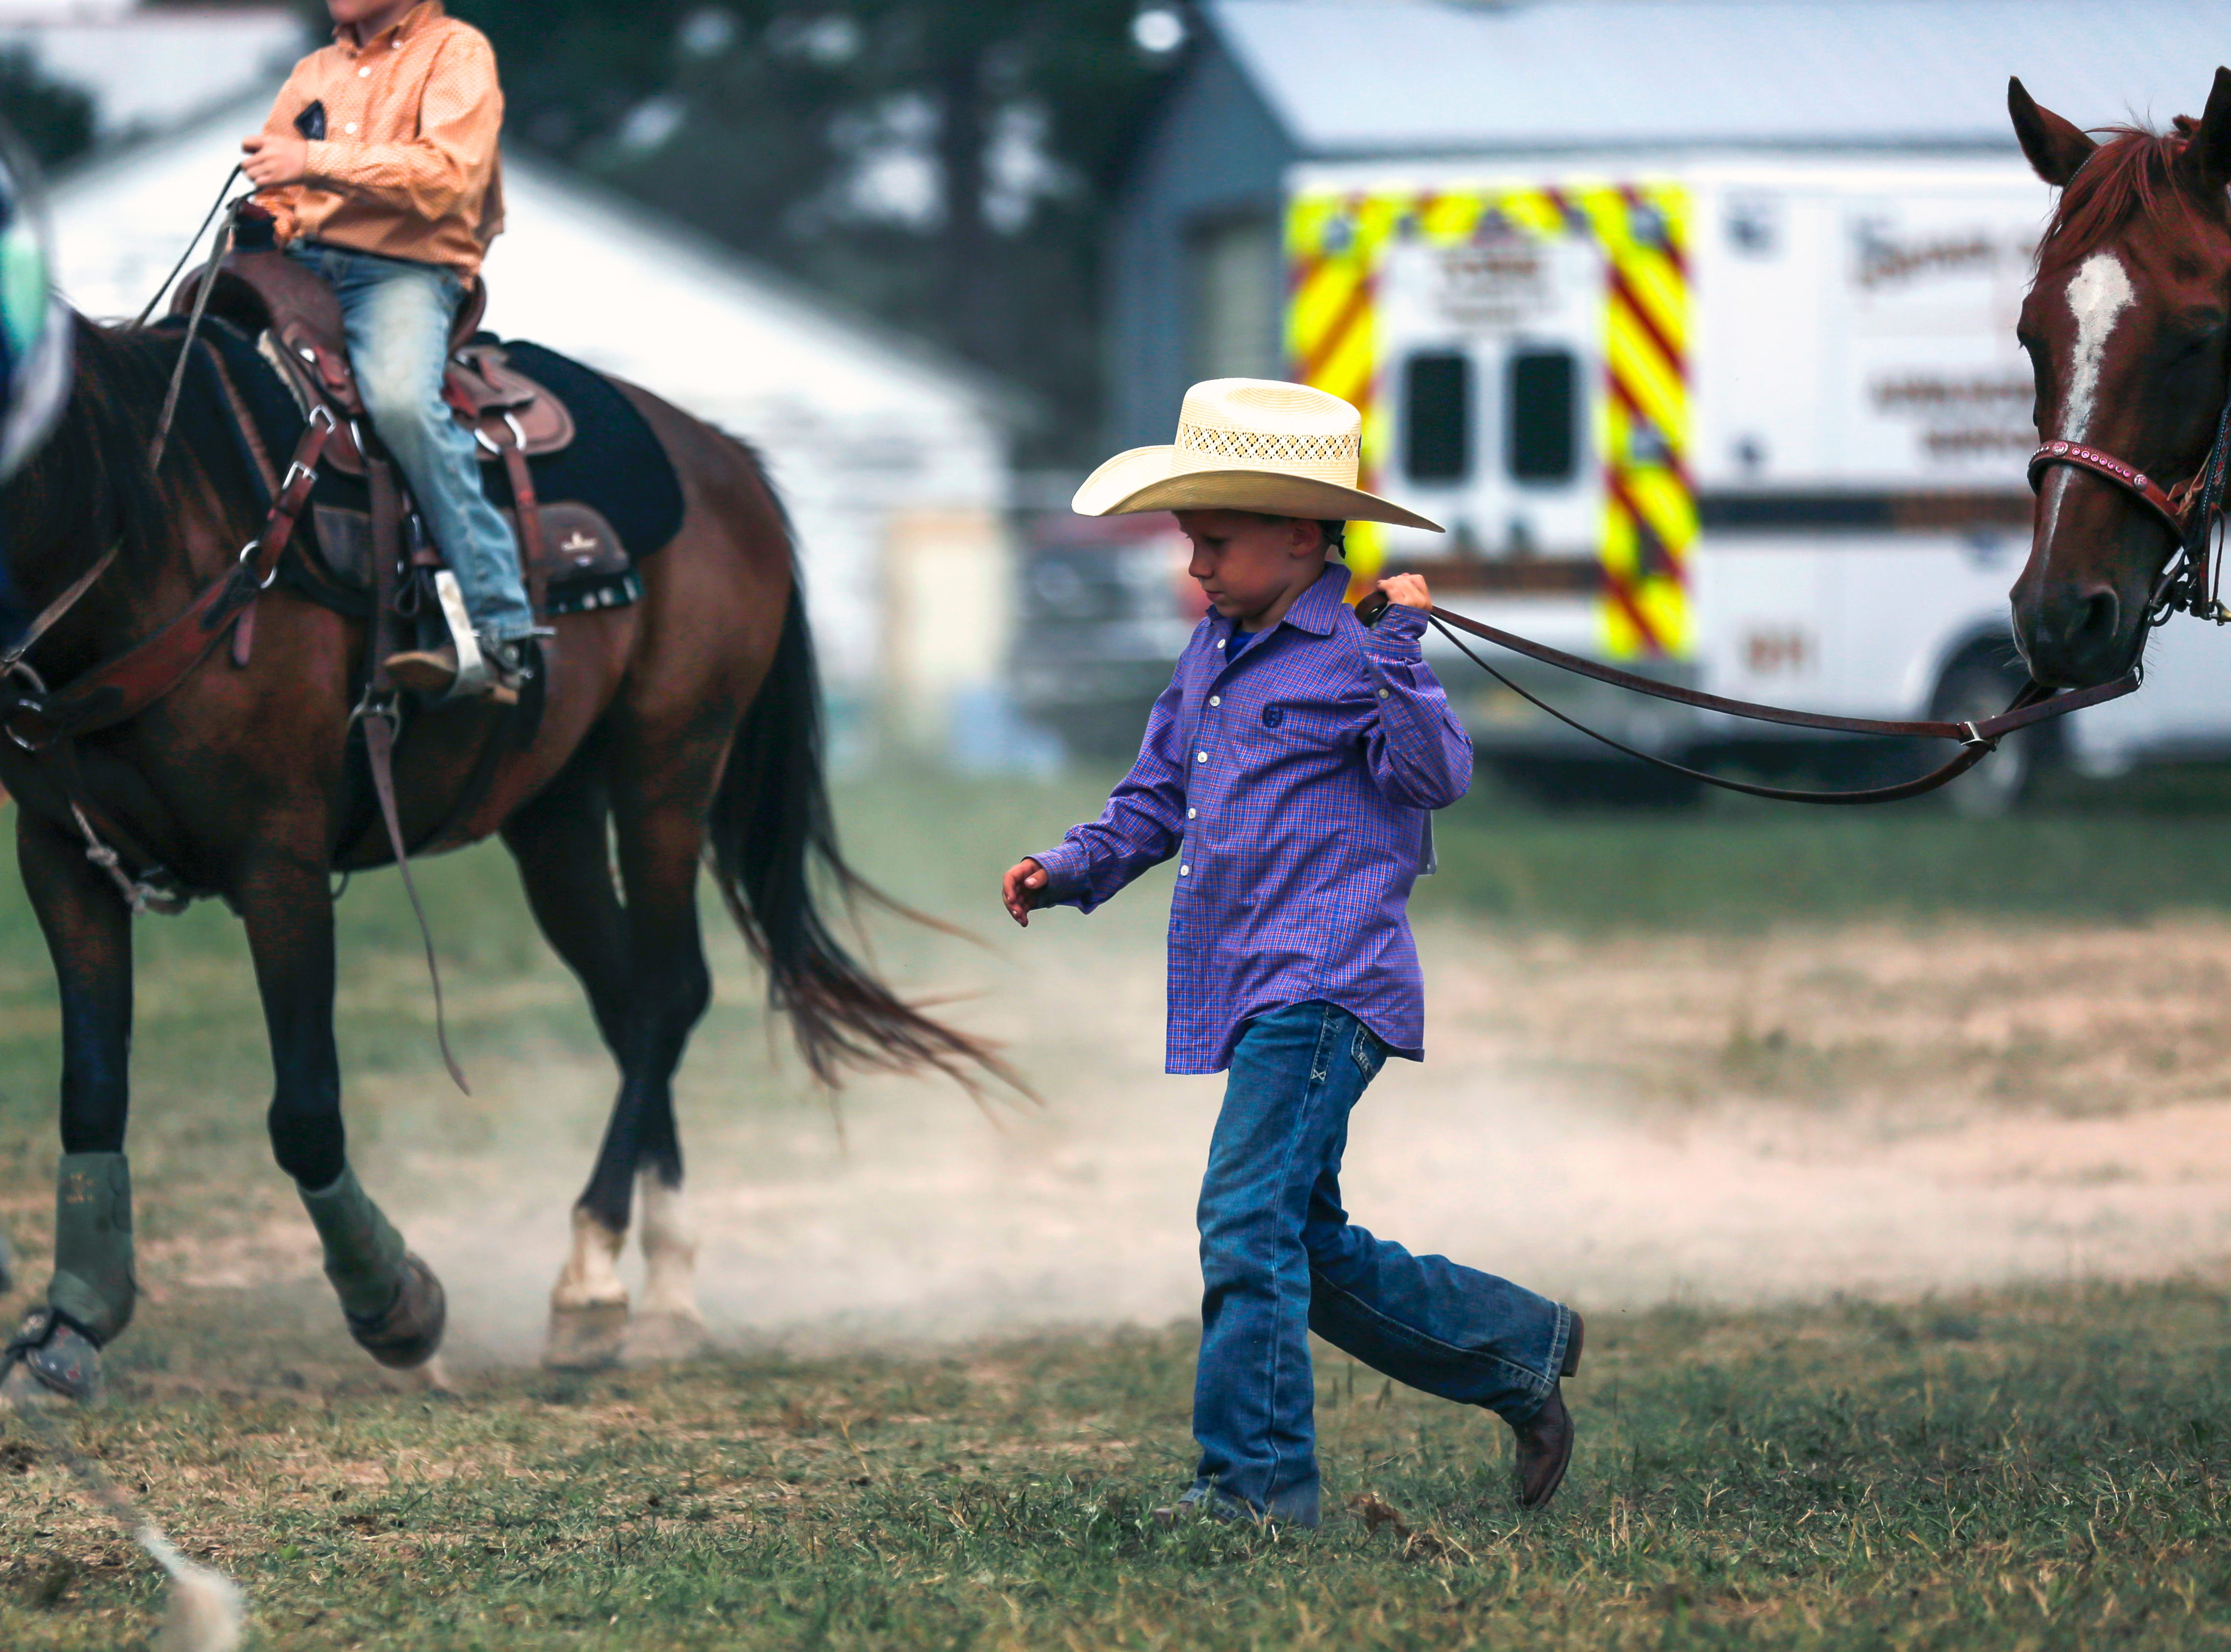 A boy leads his horse through the fairgrounds during the Amherst Little Britches Wisconsin Rodeo in Amherst, Wis., August 17, 2018.